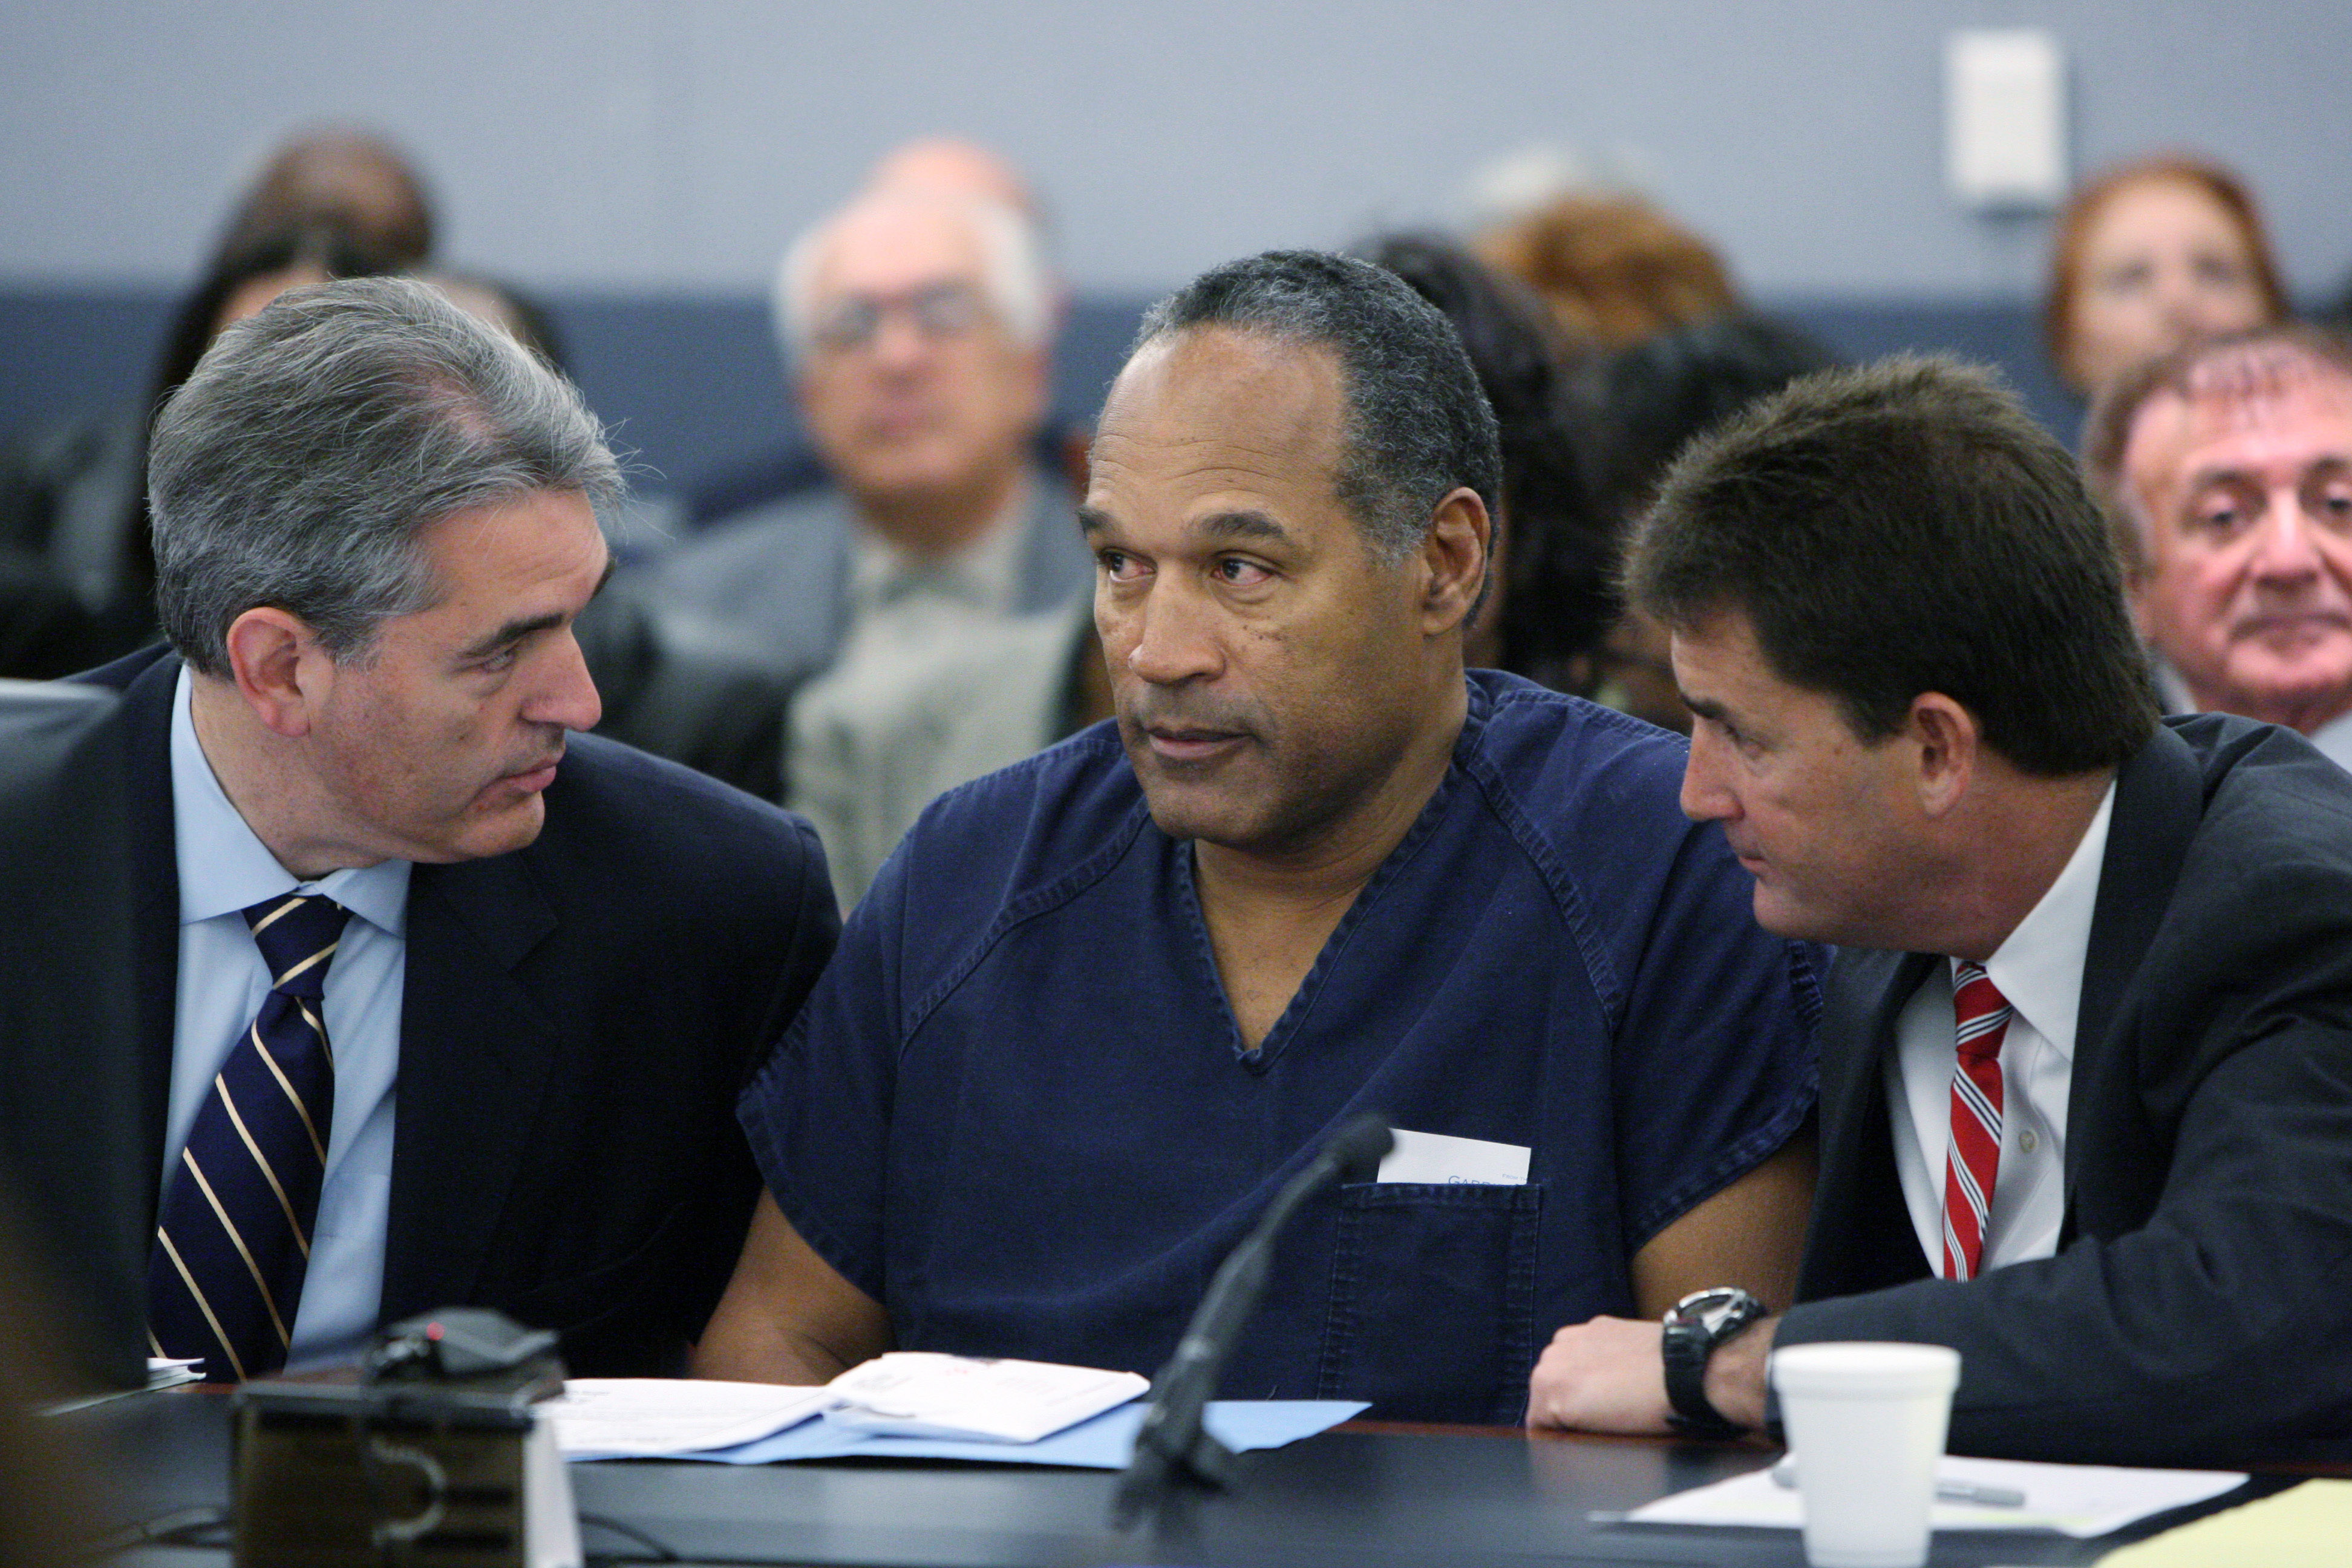 LAS VEGAS - DECEMBER 5:  O.J. Simpson (C) appears in court with attorneys Gabriel Grasso (L) and Yale Galanter prior to sentencing at the Clark County Regional Justice Center December 5, 2008 in Las Vegas, Nevada.  Simpson and co-defendant Clarence 'C.J.'